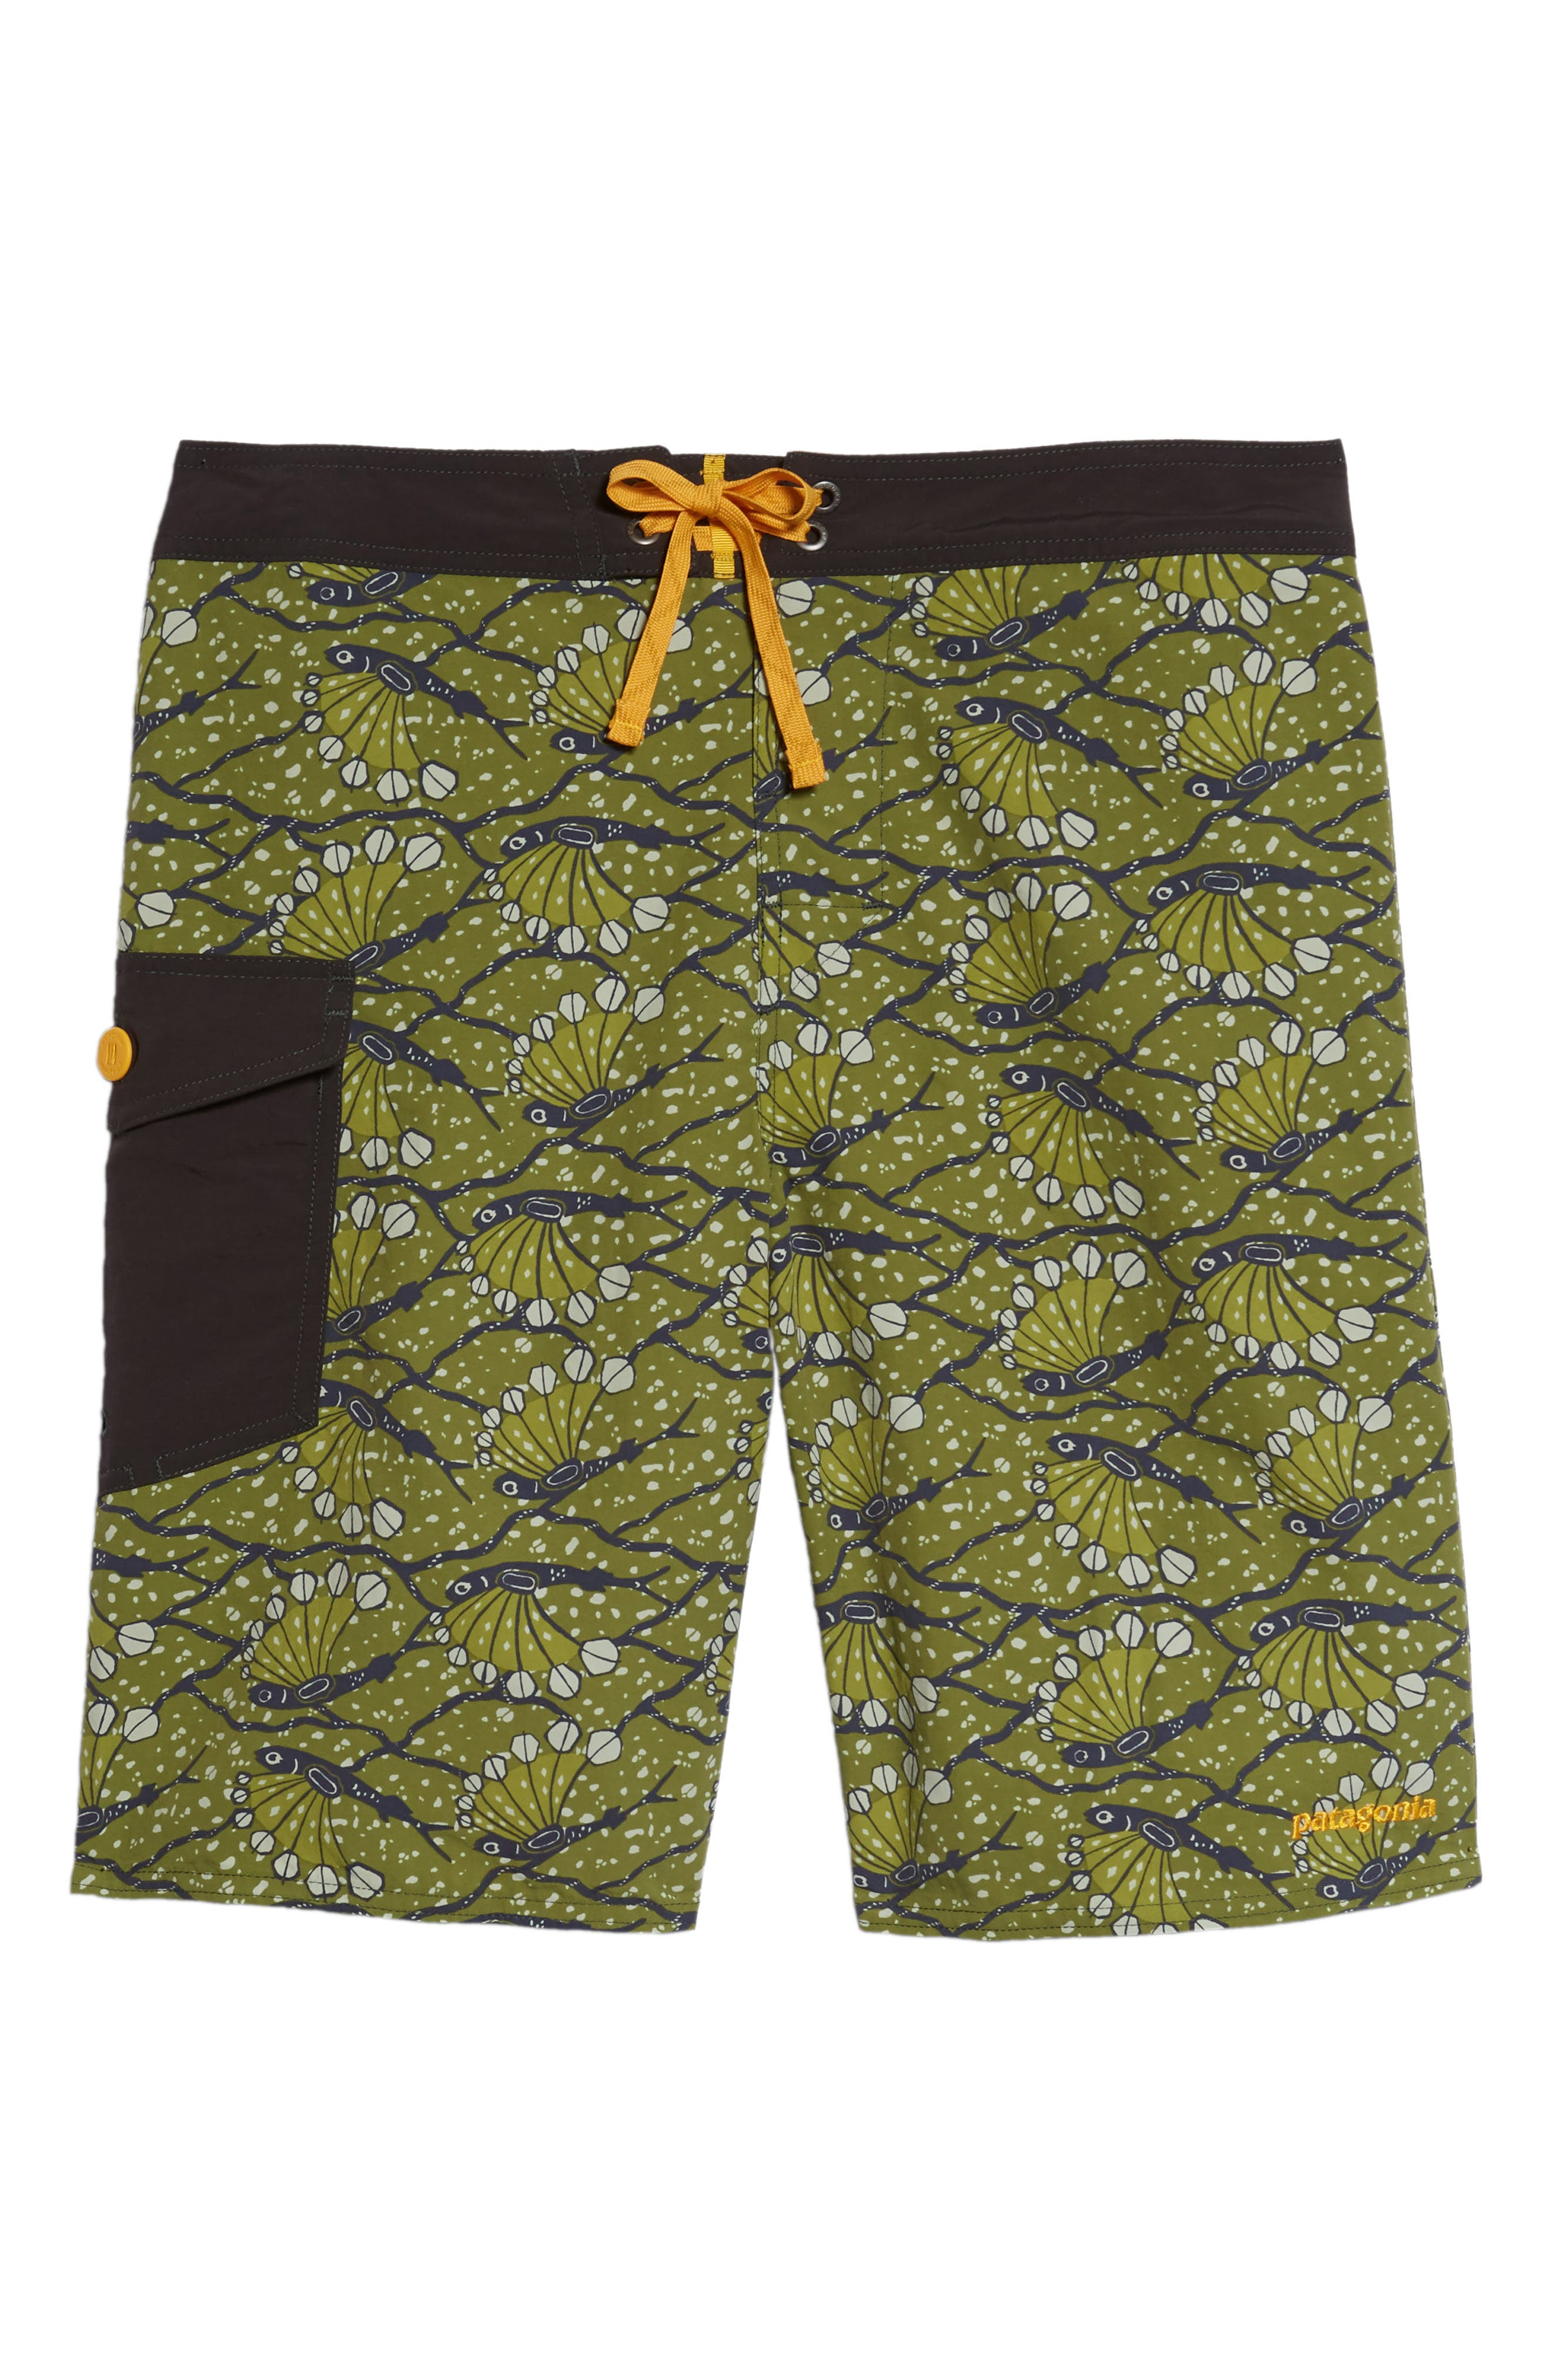 Wavefarer Board Shorts,                             Alternate thumbnail 6, color,                             Hexy Fish Sprouted Green